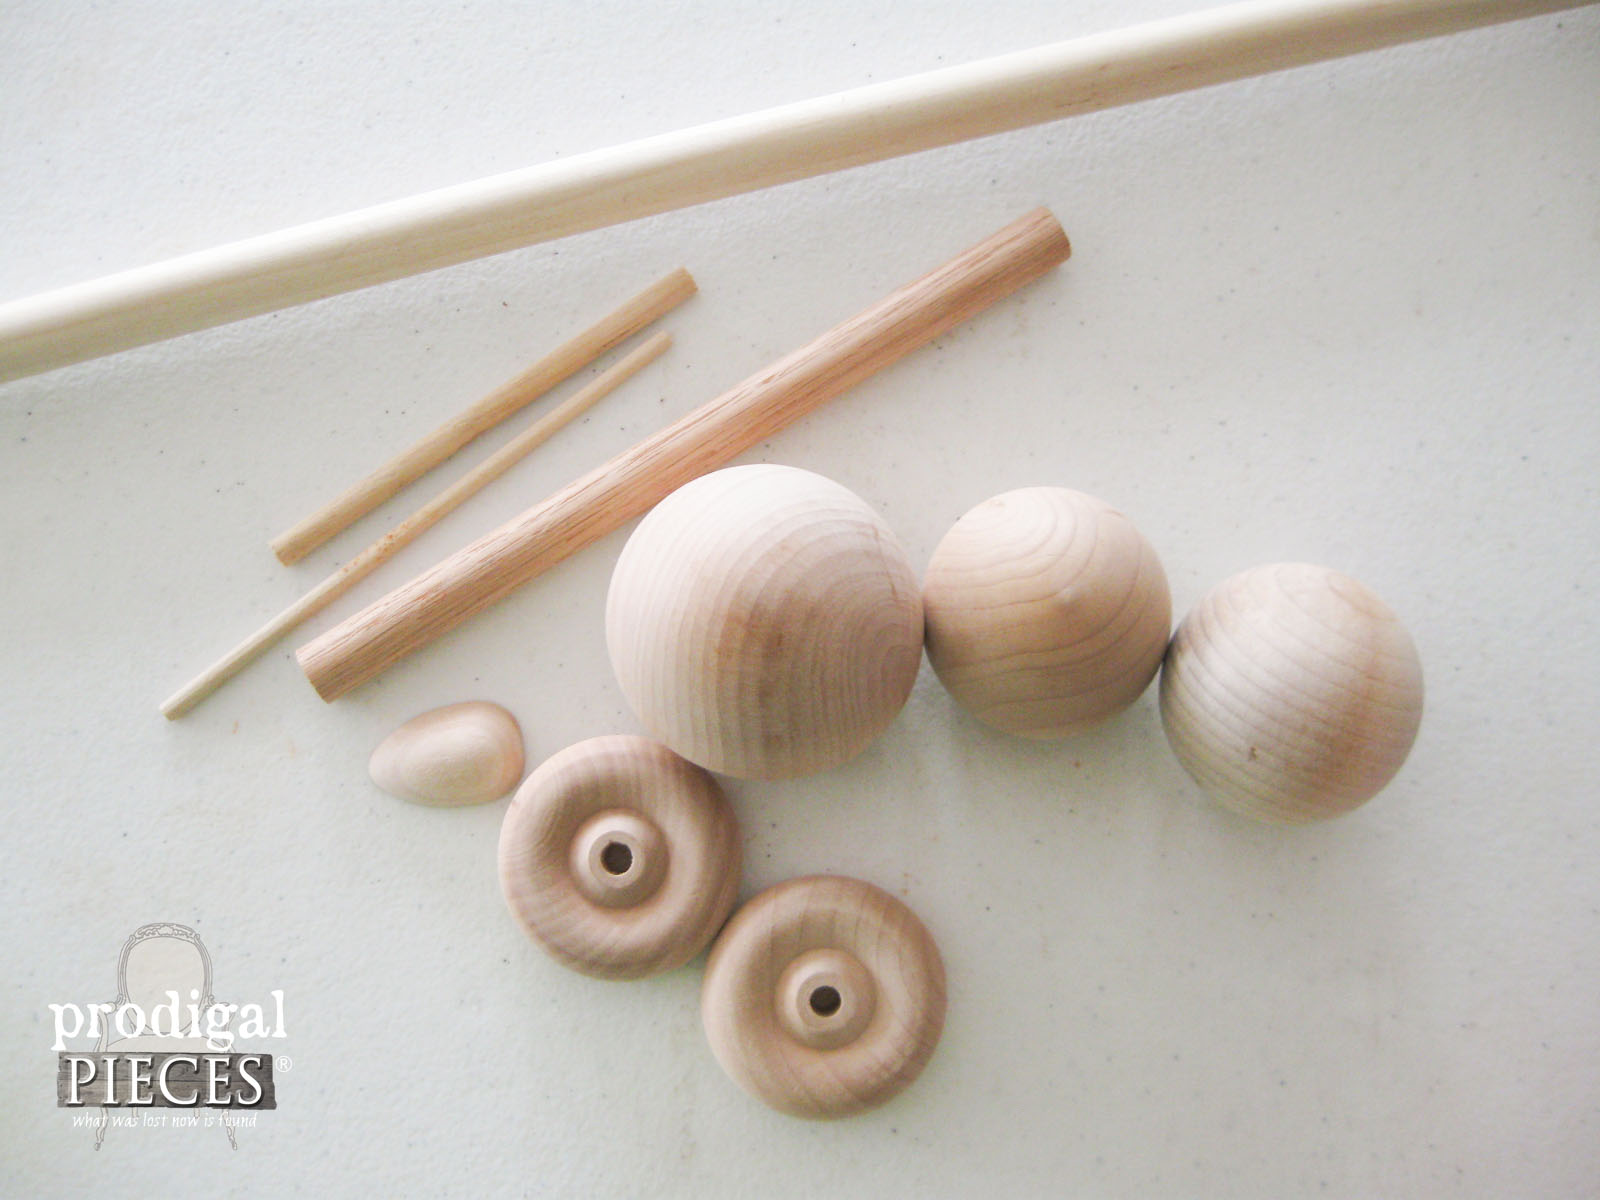 Wooden Toy Duck Parts | Prodigal Pieces | www.prodigalpieces.com